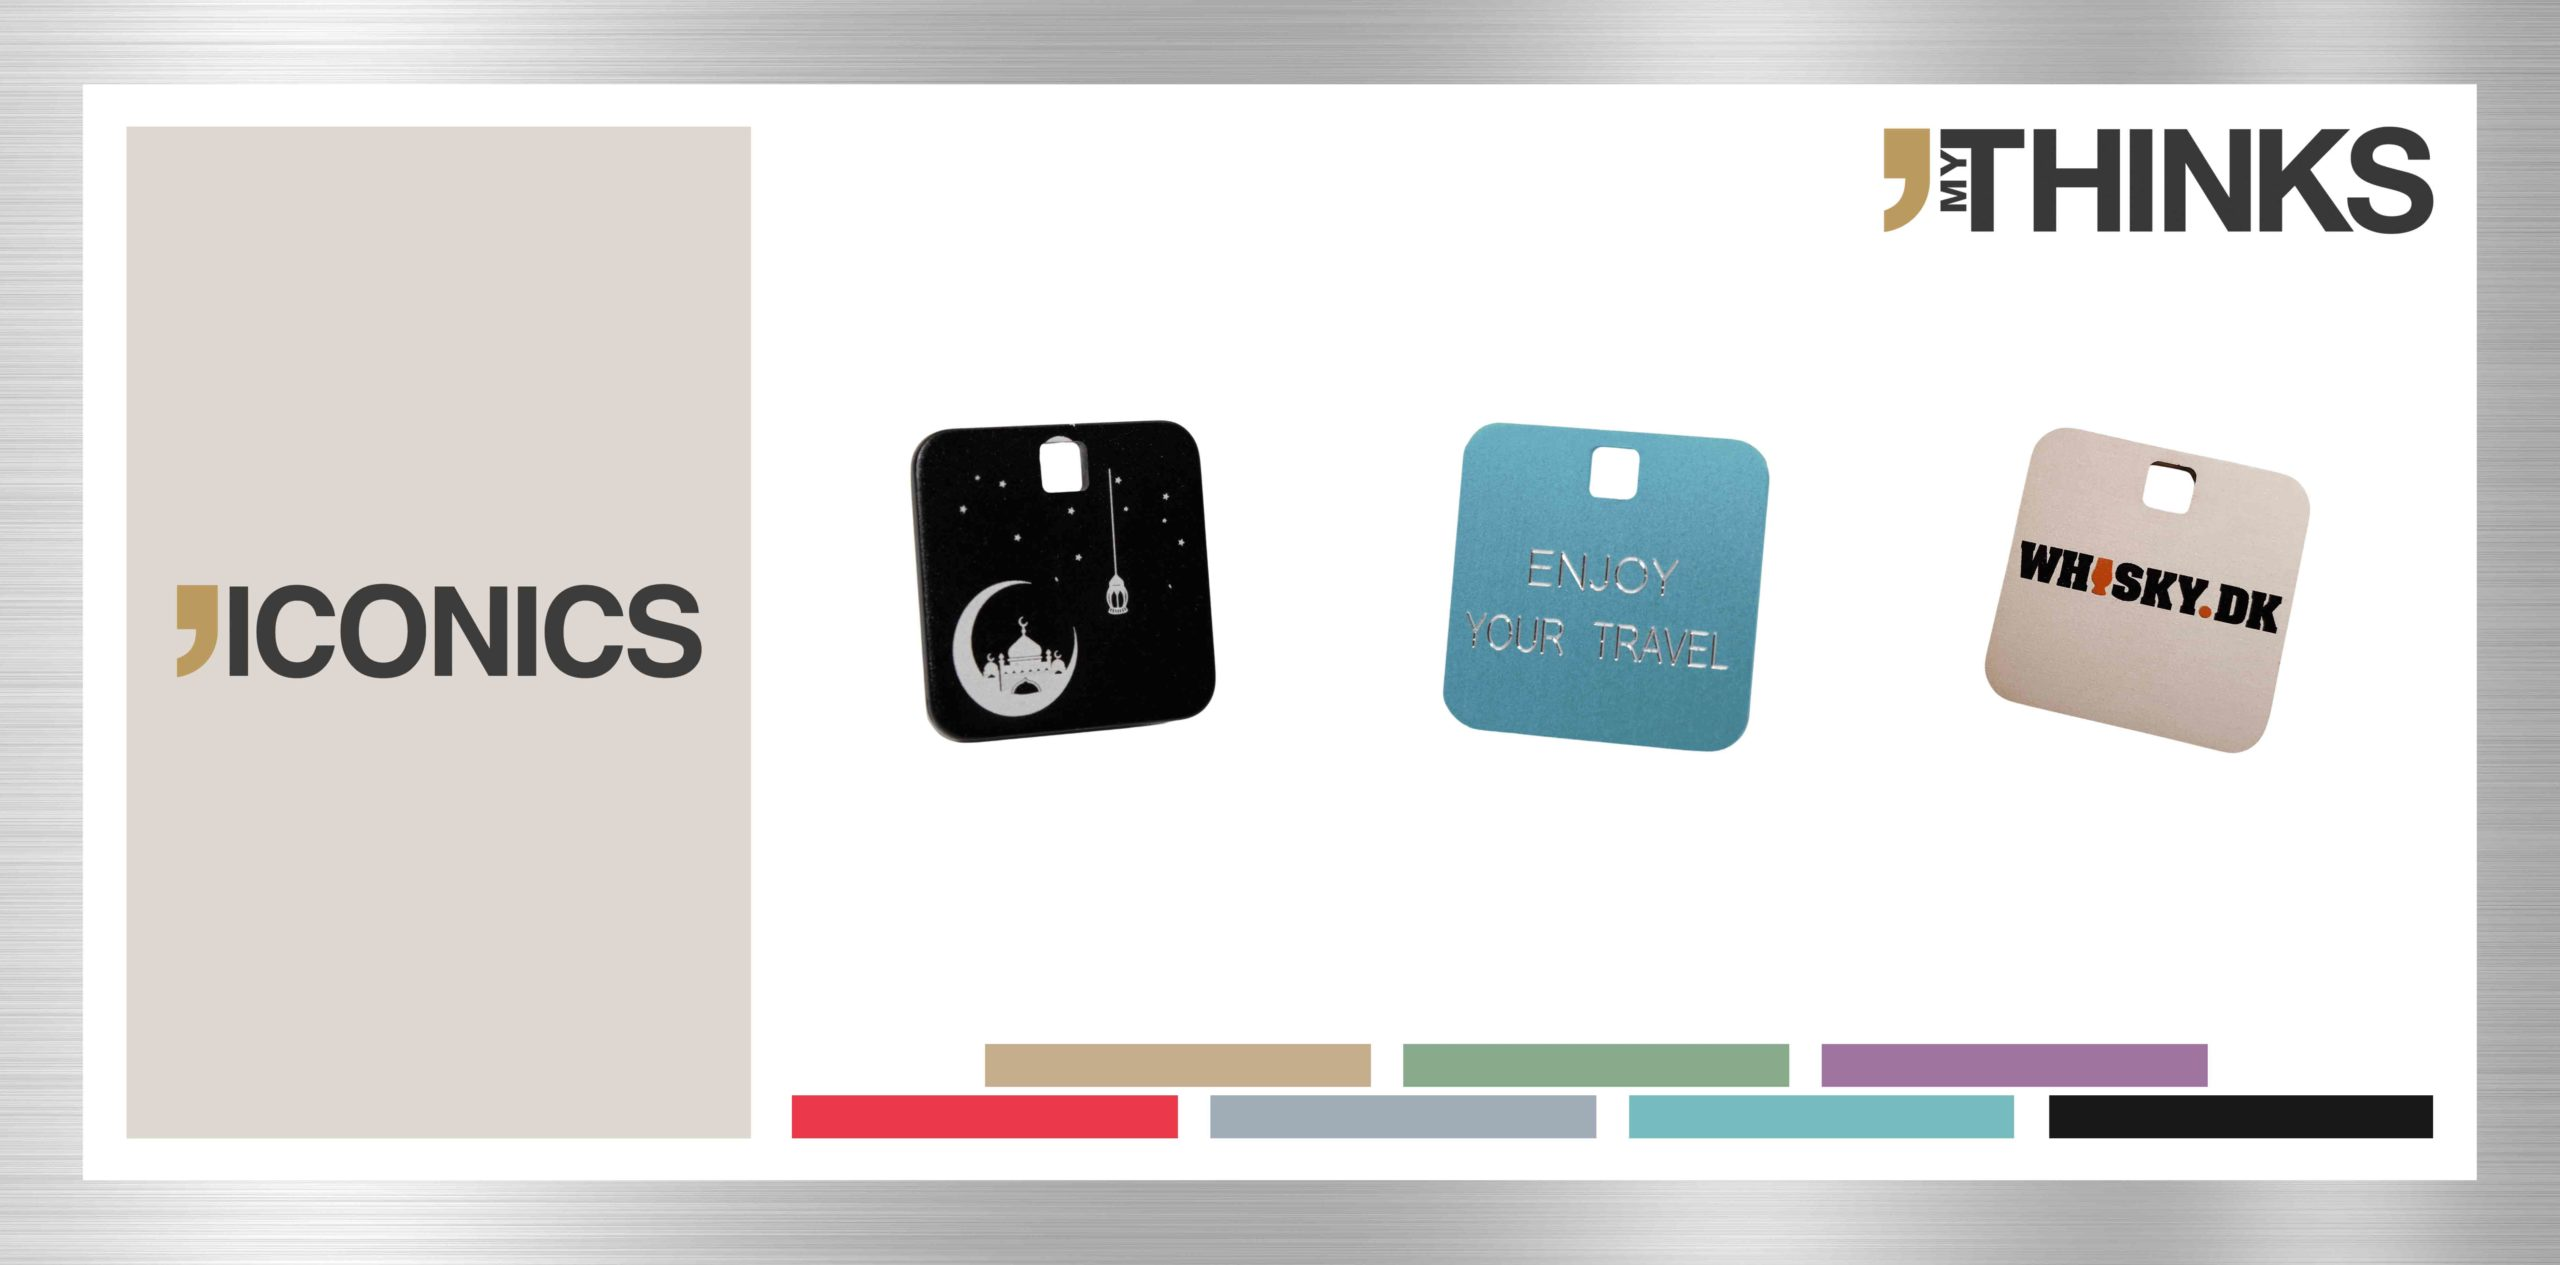 3 square personalized gifts in anodized aluminum from Iconics collection : Black tales of Arabian night medal / laser marking ; Blue enjoy your travel tag / diamond engraving ; gold whiskey dk charm / digital printing